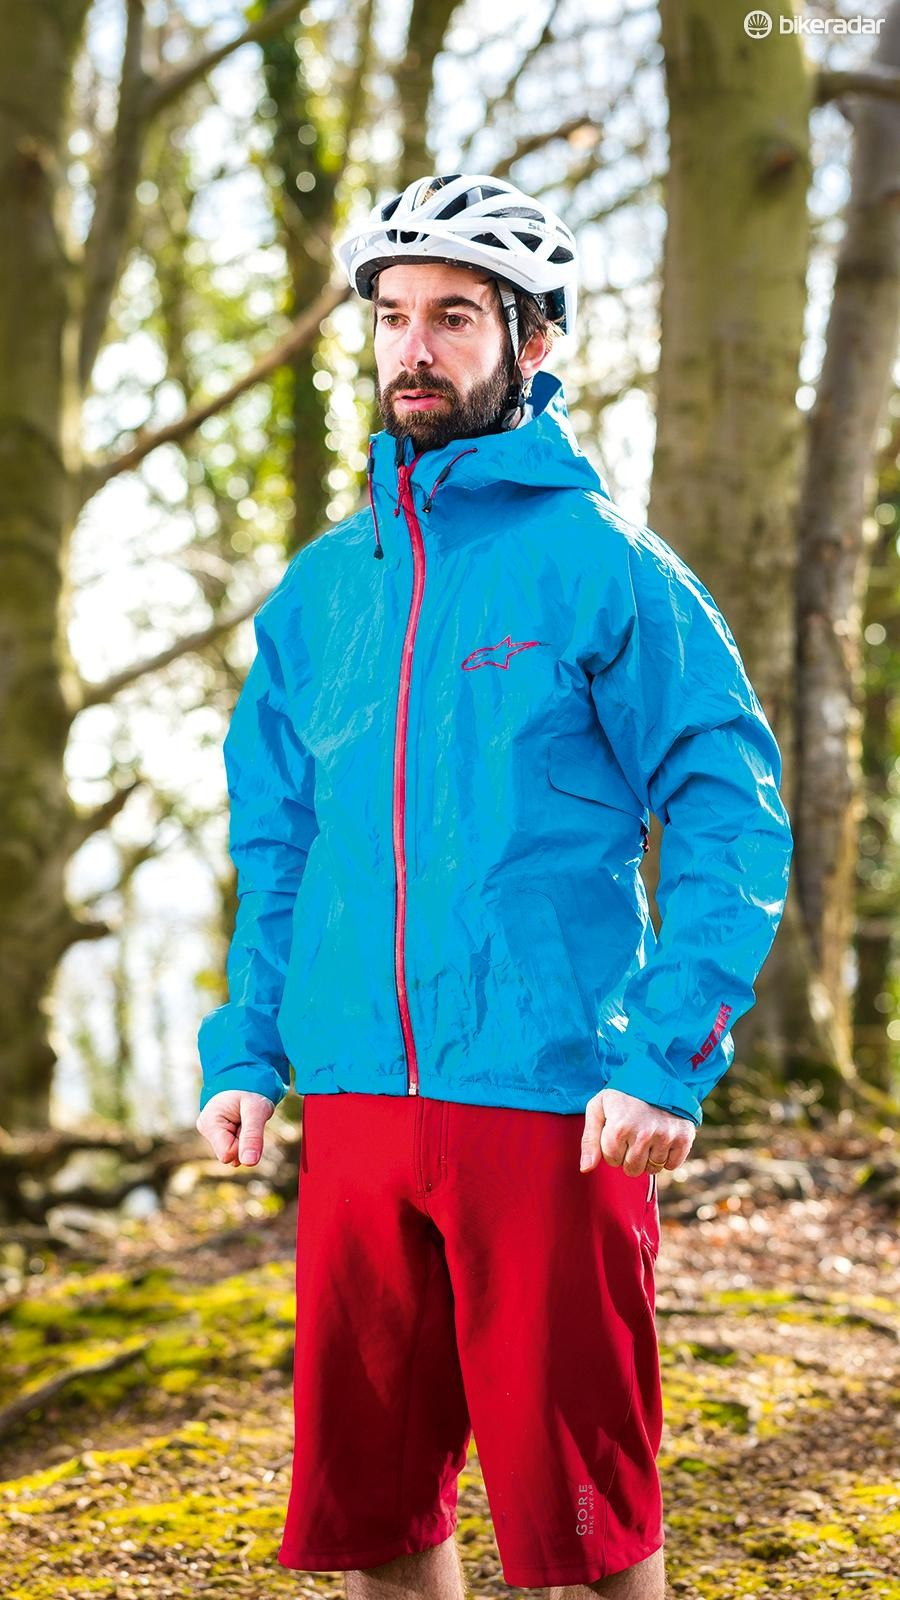 The All Mountain jacket's generous cut offers plenty of scope for layering up